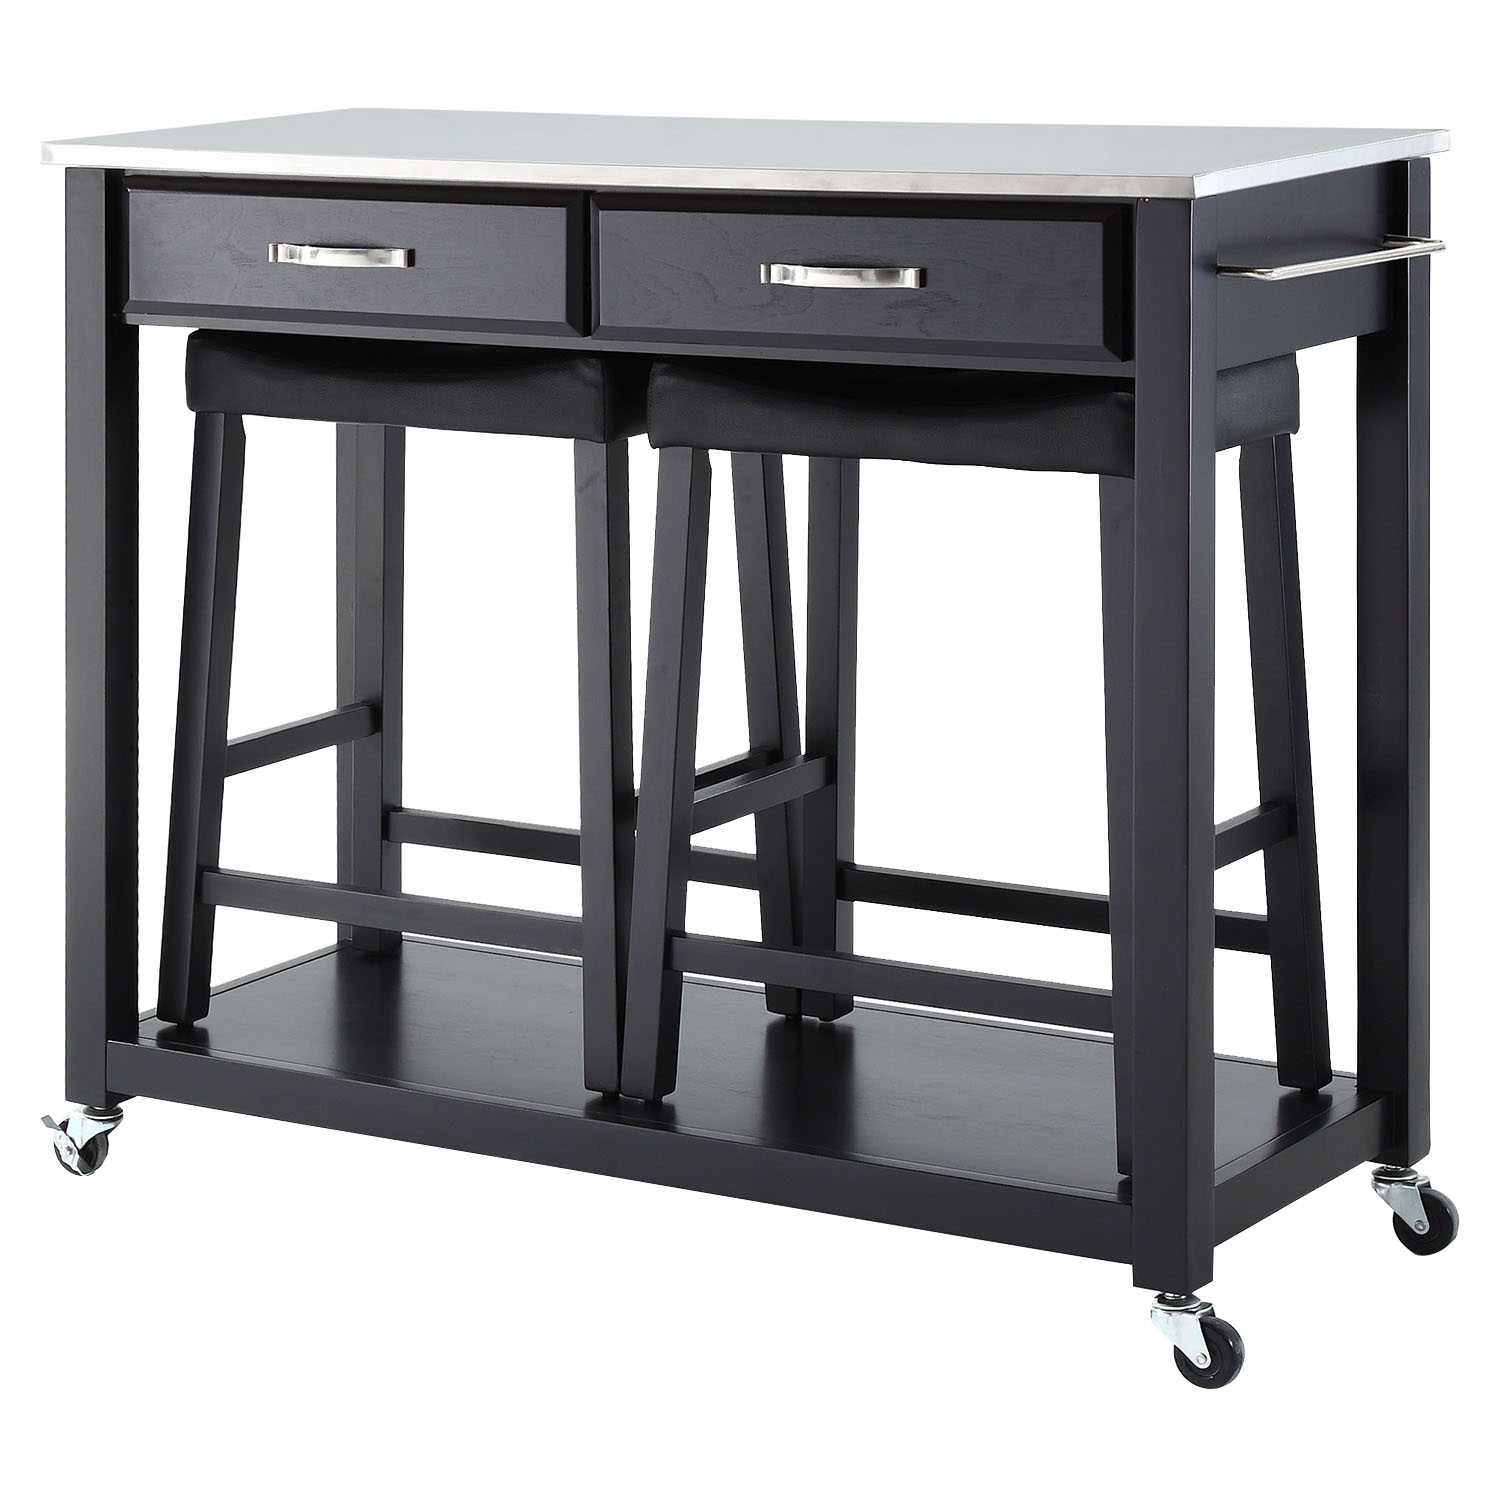 Stainless Steel Top Kitchen Island Cart and Saddle Stools  Black